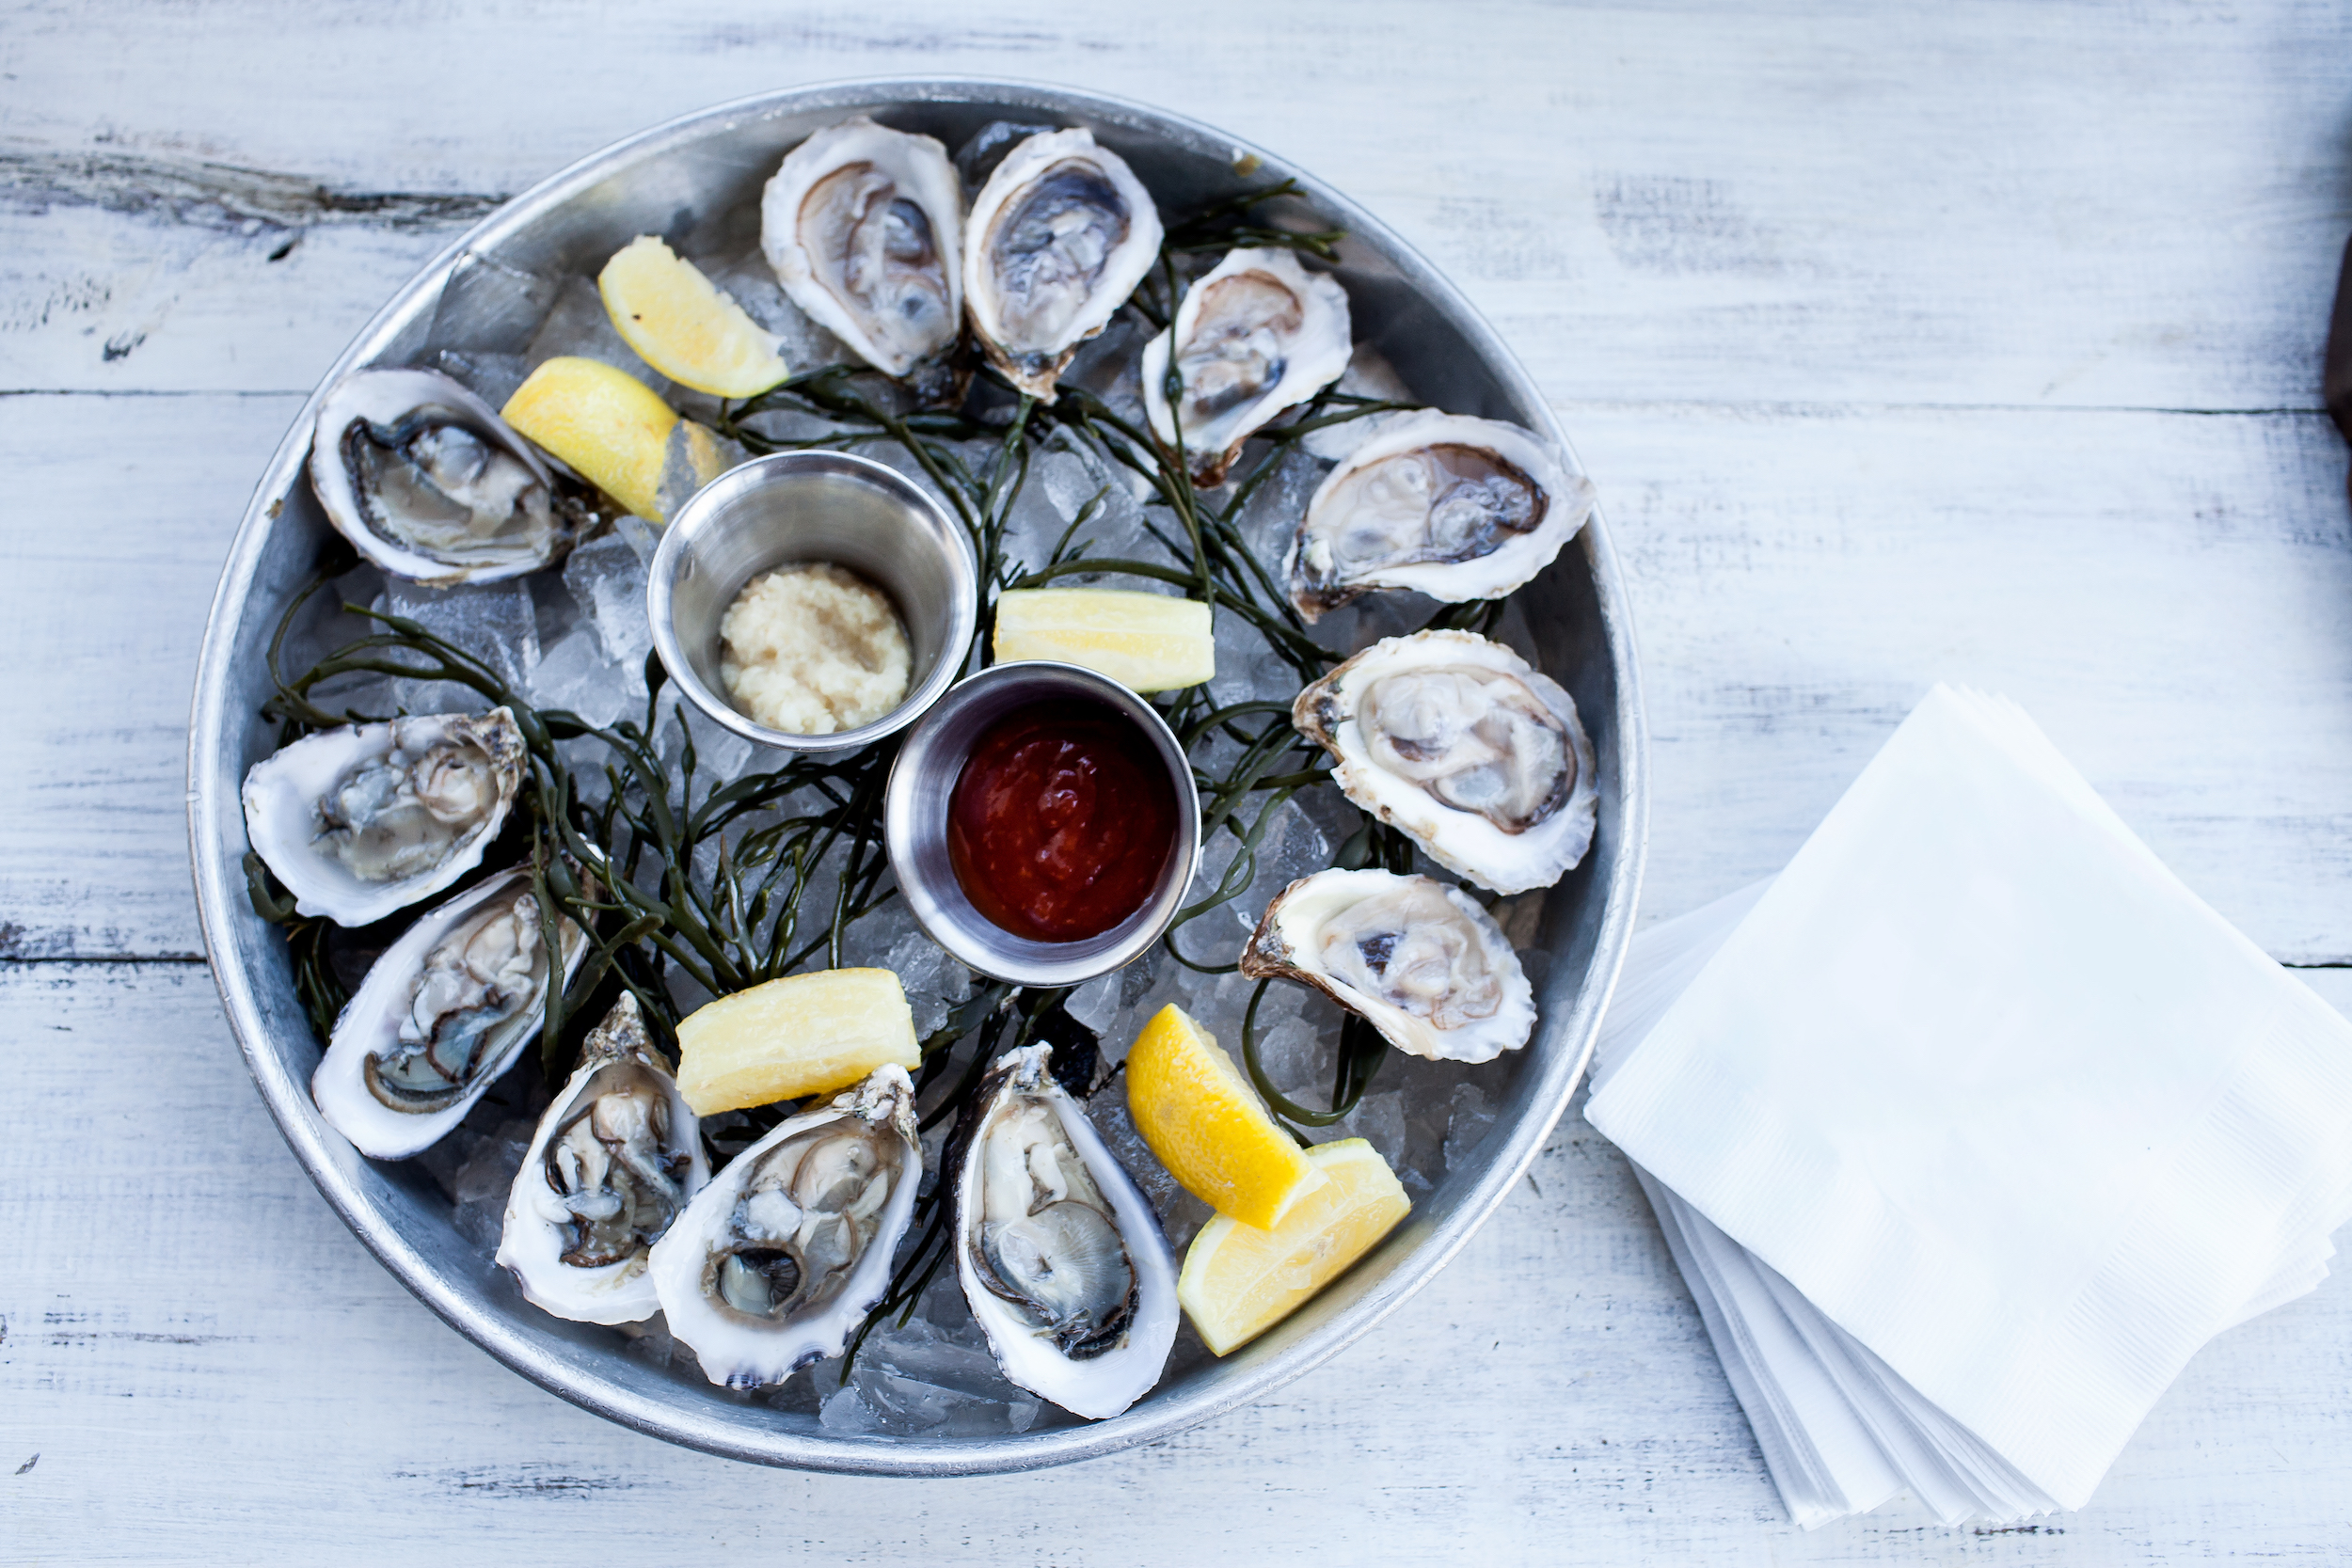 Located in the heart of downtown Nashville's burgeoning SoBro district,the Southern Steak & Oyster is a unique and animated eatery that offers an authentically southern adventure with a twist. -